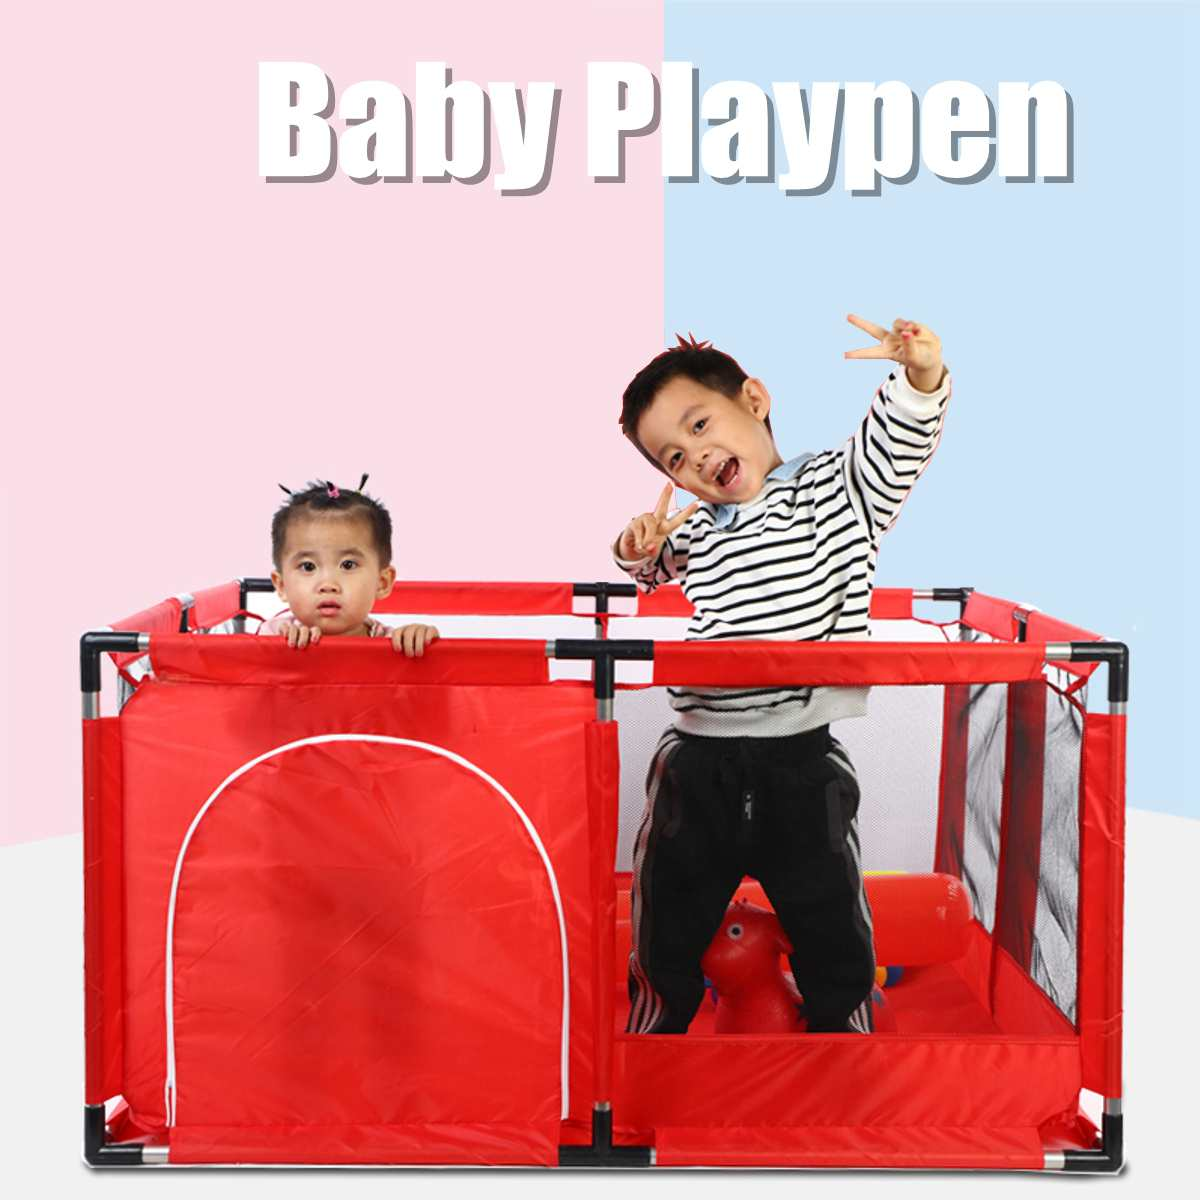 Bioby <font><b>Baby</b></font> Playpen For Children <font><b>Pool</b></font> <font><b>Balls</b></font> For Newborn <font><b>Baby</b></font> Fence Playpen For <font><b>Baby</b></font> <font><b>Pool</b></font> Children Playpen Kids Safety Barrier image